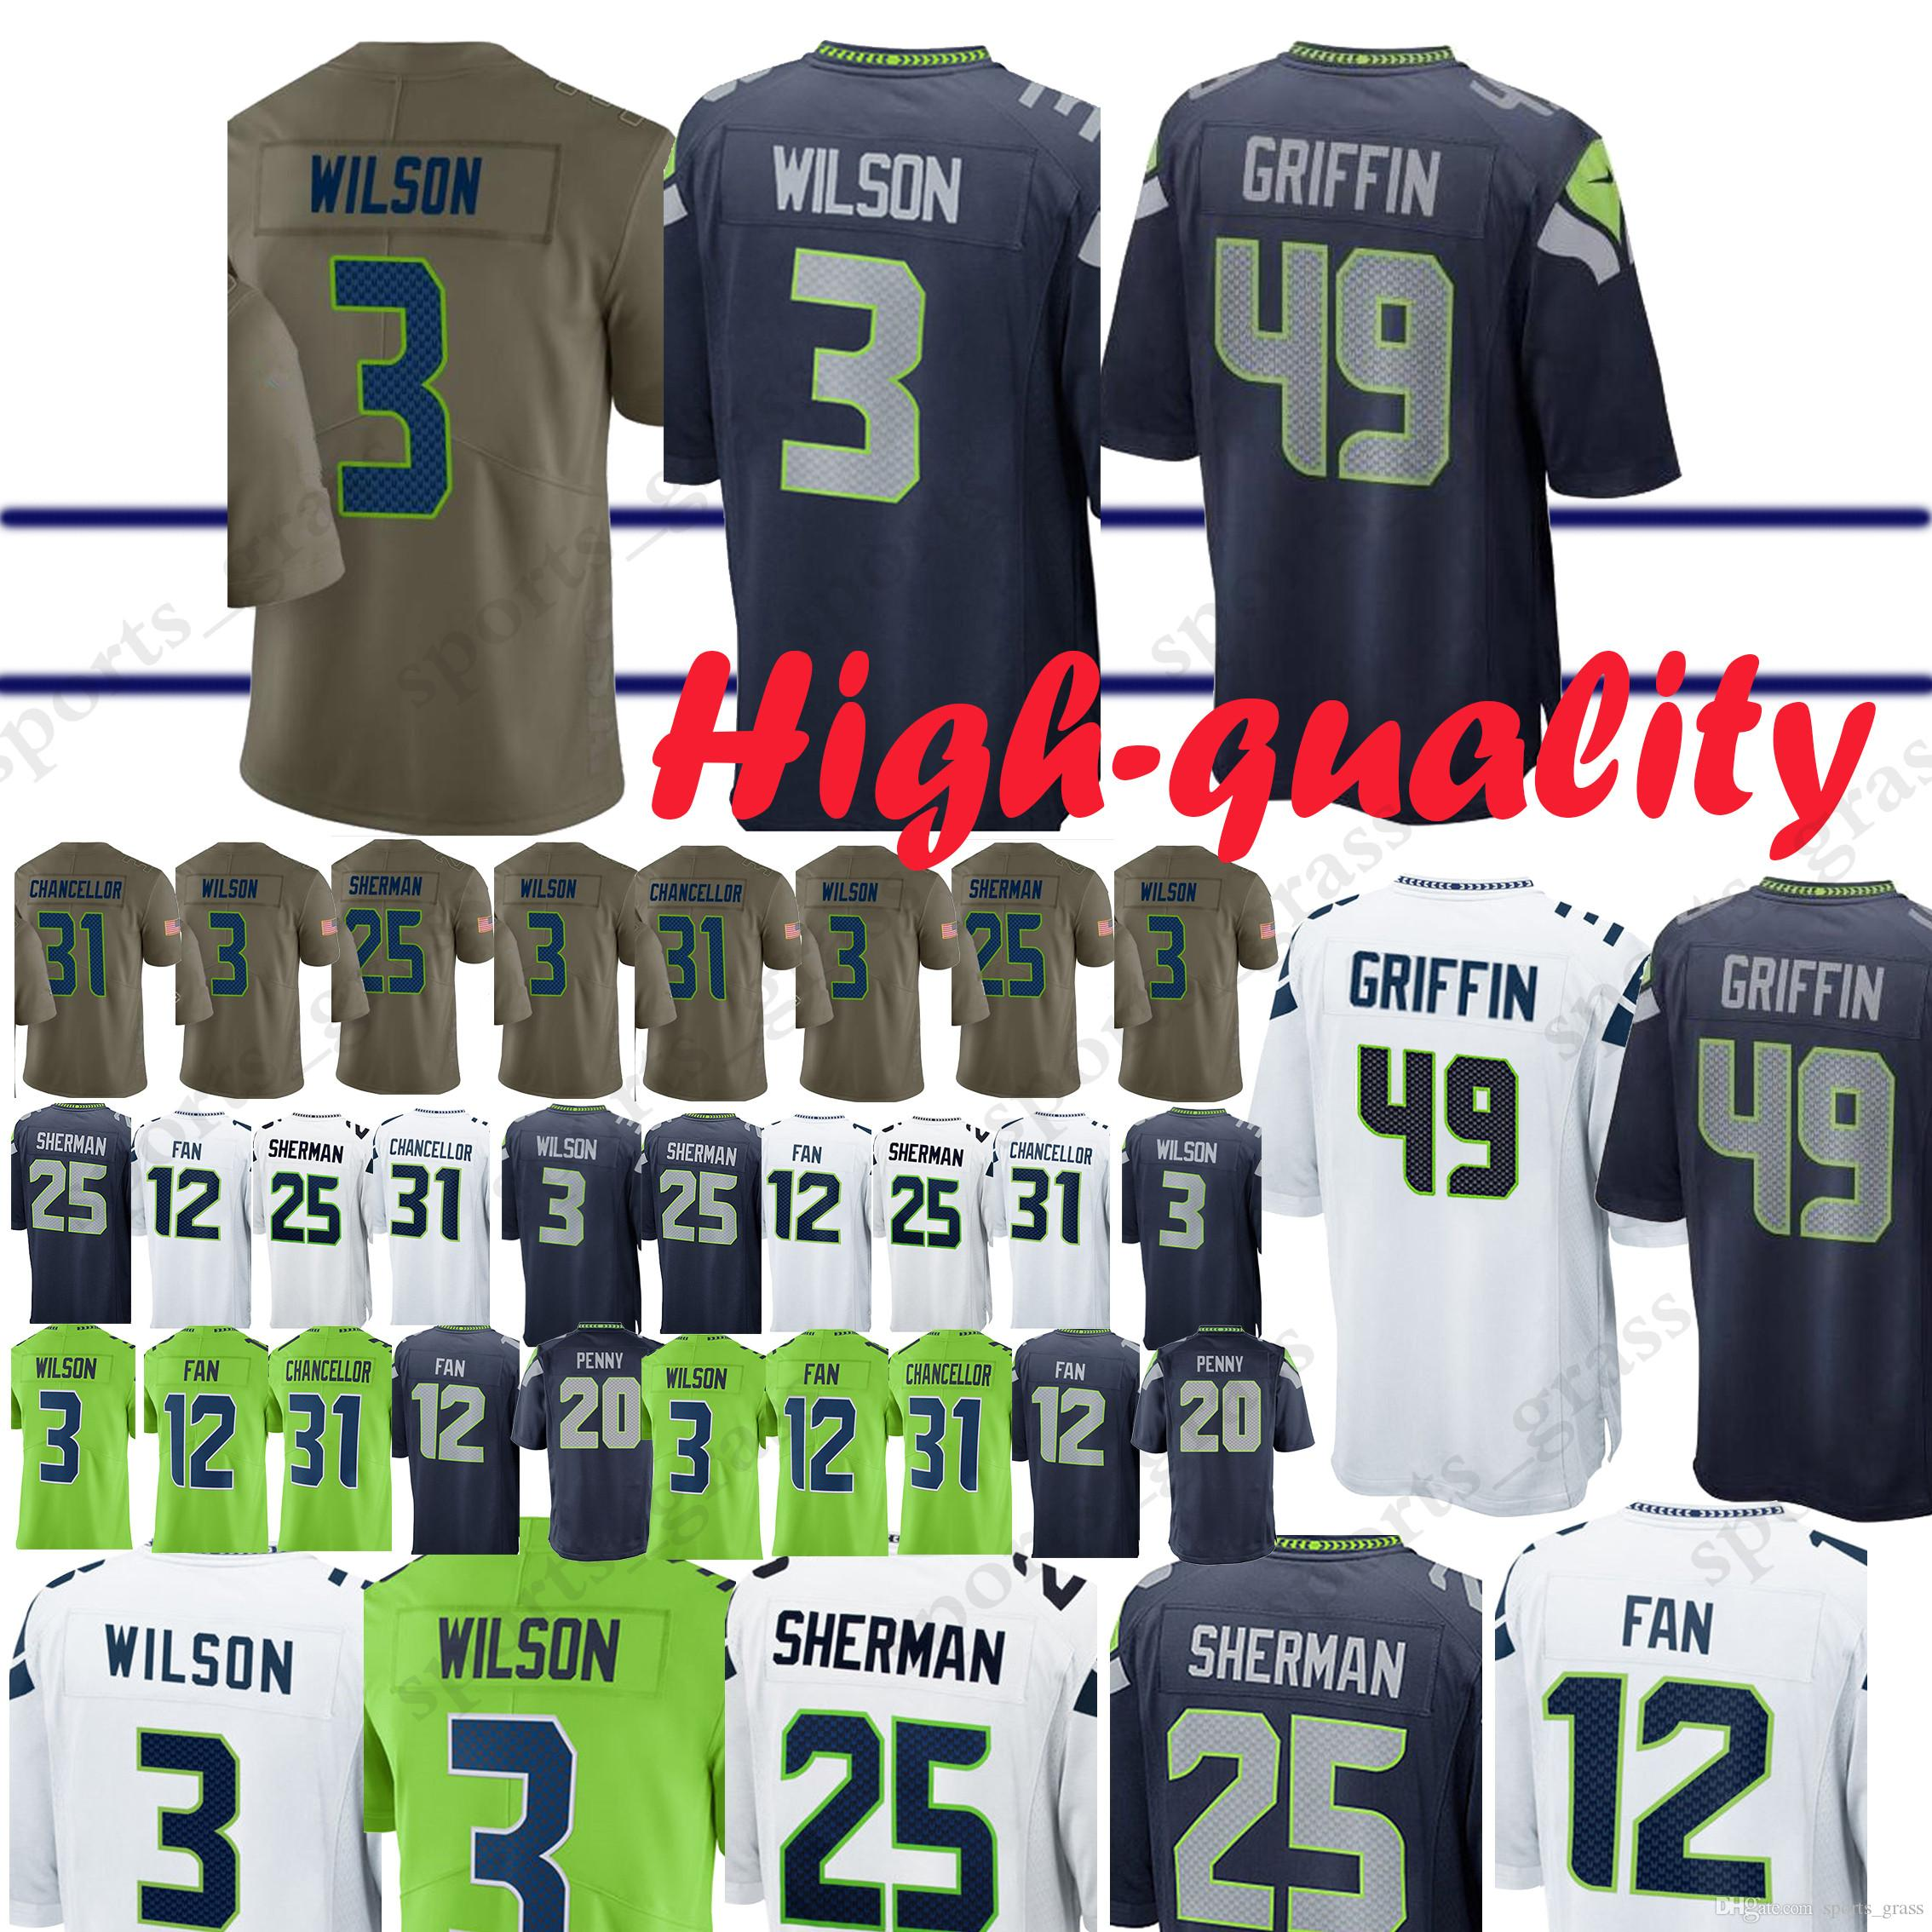 new styles 84d24 83d30 Seattle Seahawk Jerseys 49 Shaquem Griffin 20 Rashaad Penny 3 Russell  Wilson 12 Fan 29 Earl Thomas 31 Kam Chancellor Jersey Adult shirt